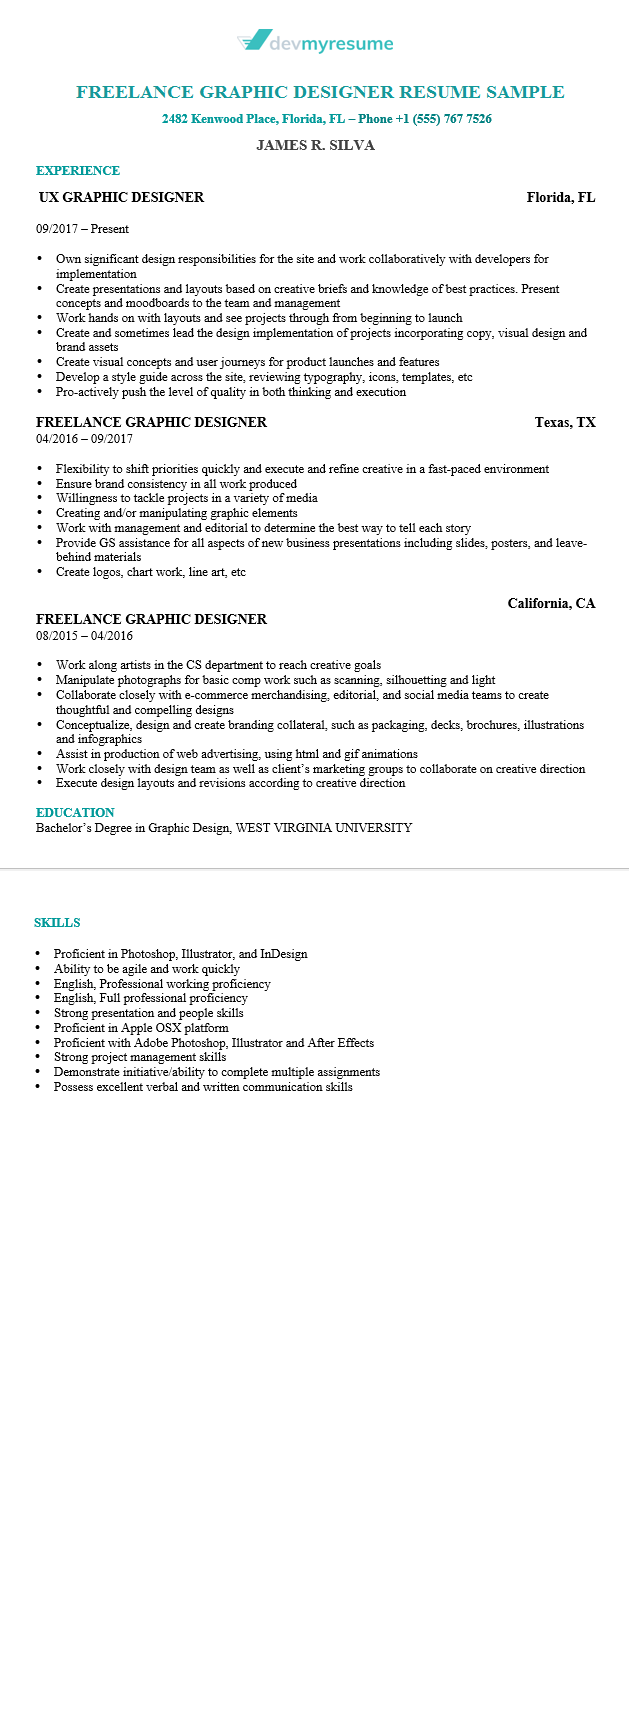 Resume Editing Services by DevMyResume.com